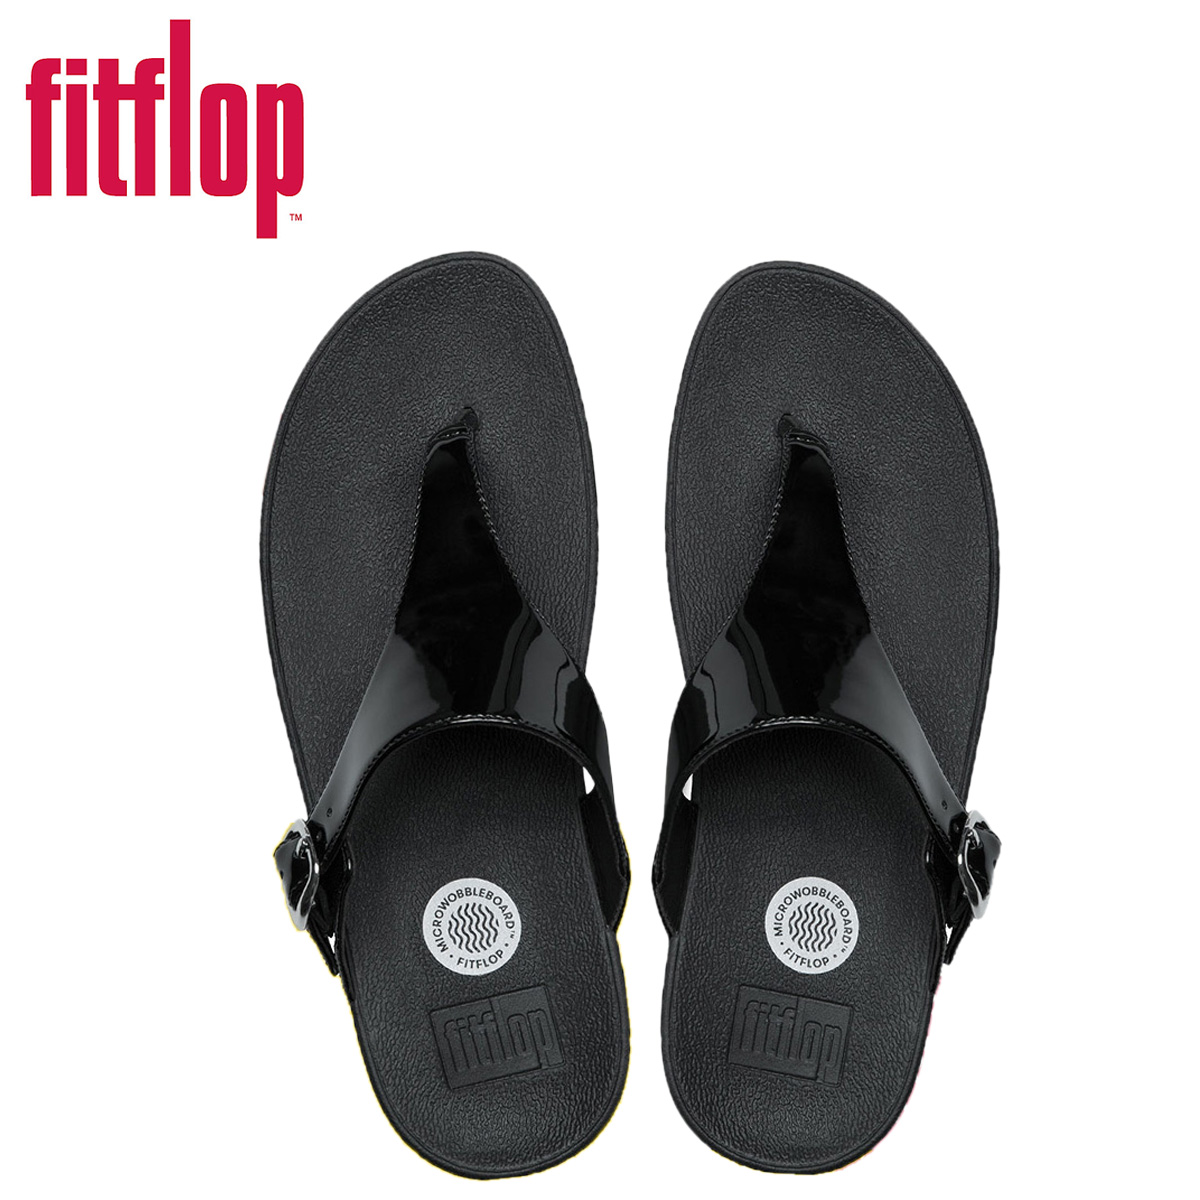 15384c291963 ... the density put a diverse focus on the fit flop Sandals first. New  generation footwear brand revolutionized the modern shoe industry does not  understand ...